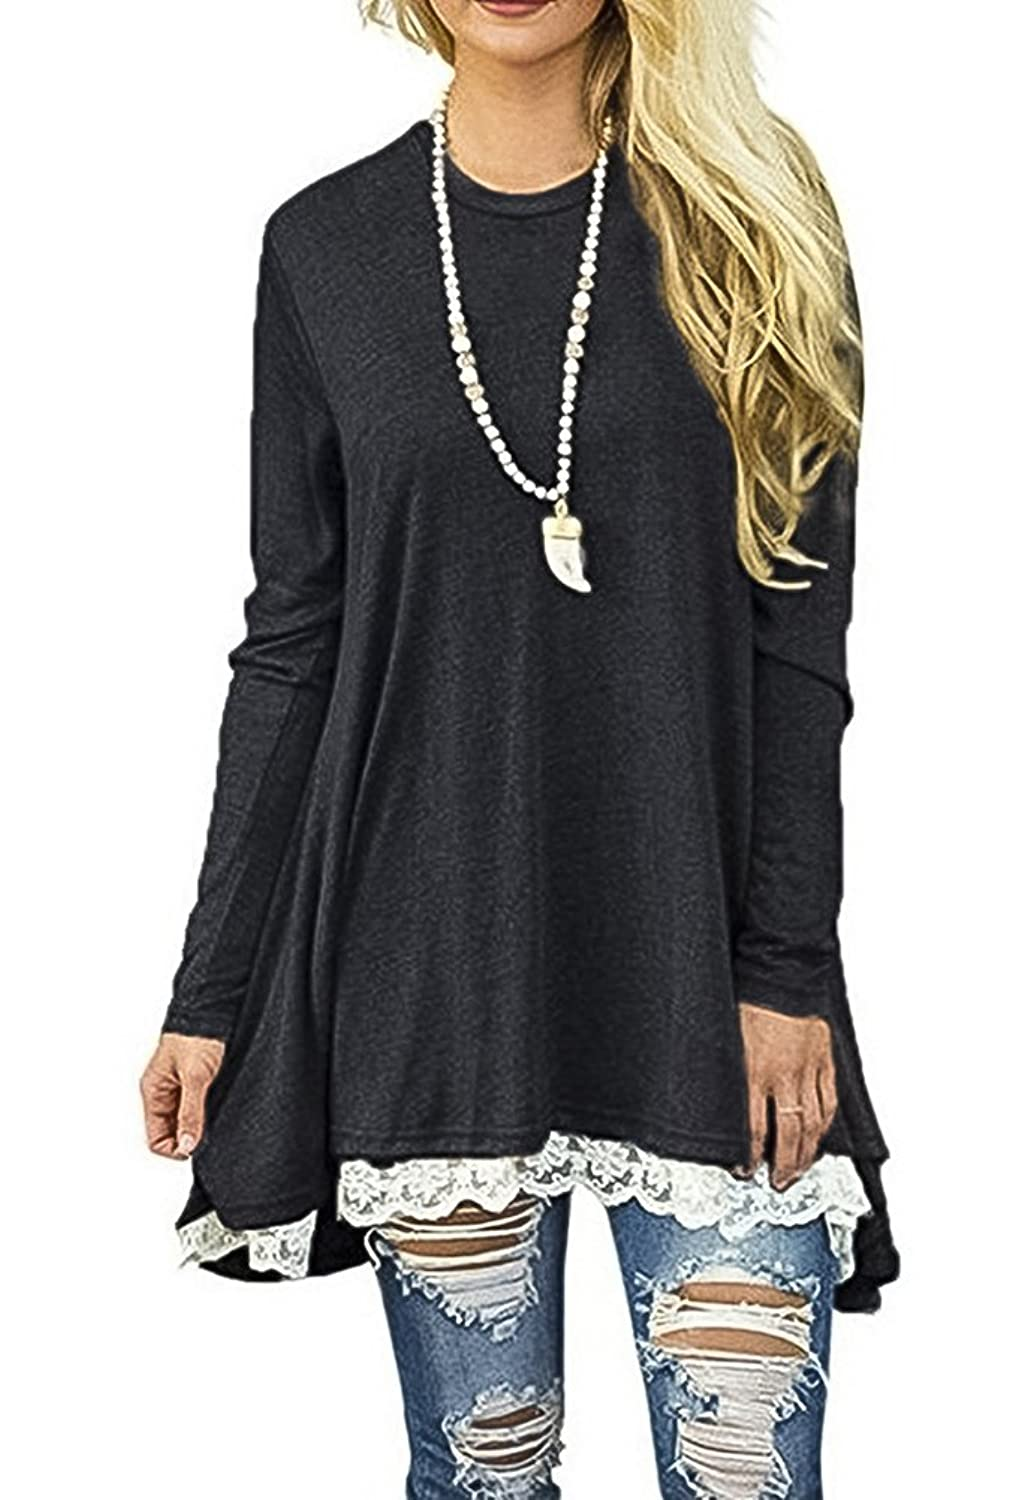 8cfa3da7e21 Long sleeve tunic tops. Comfy tunic topLace trim. Cute winter outfit. Nice  blouse. The material is soft, comfy and warm top